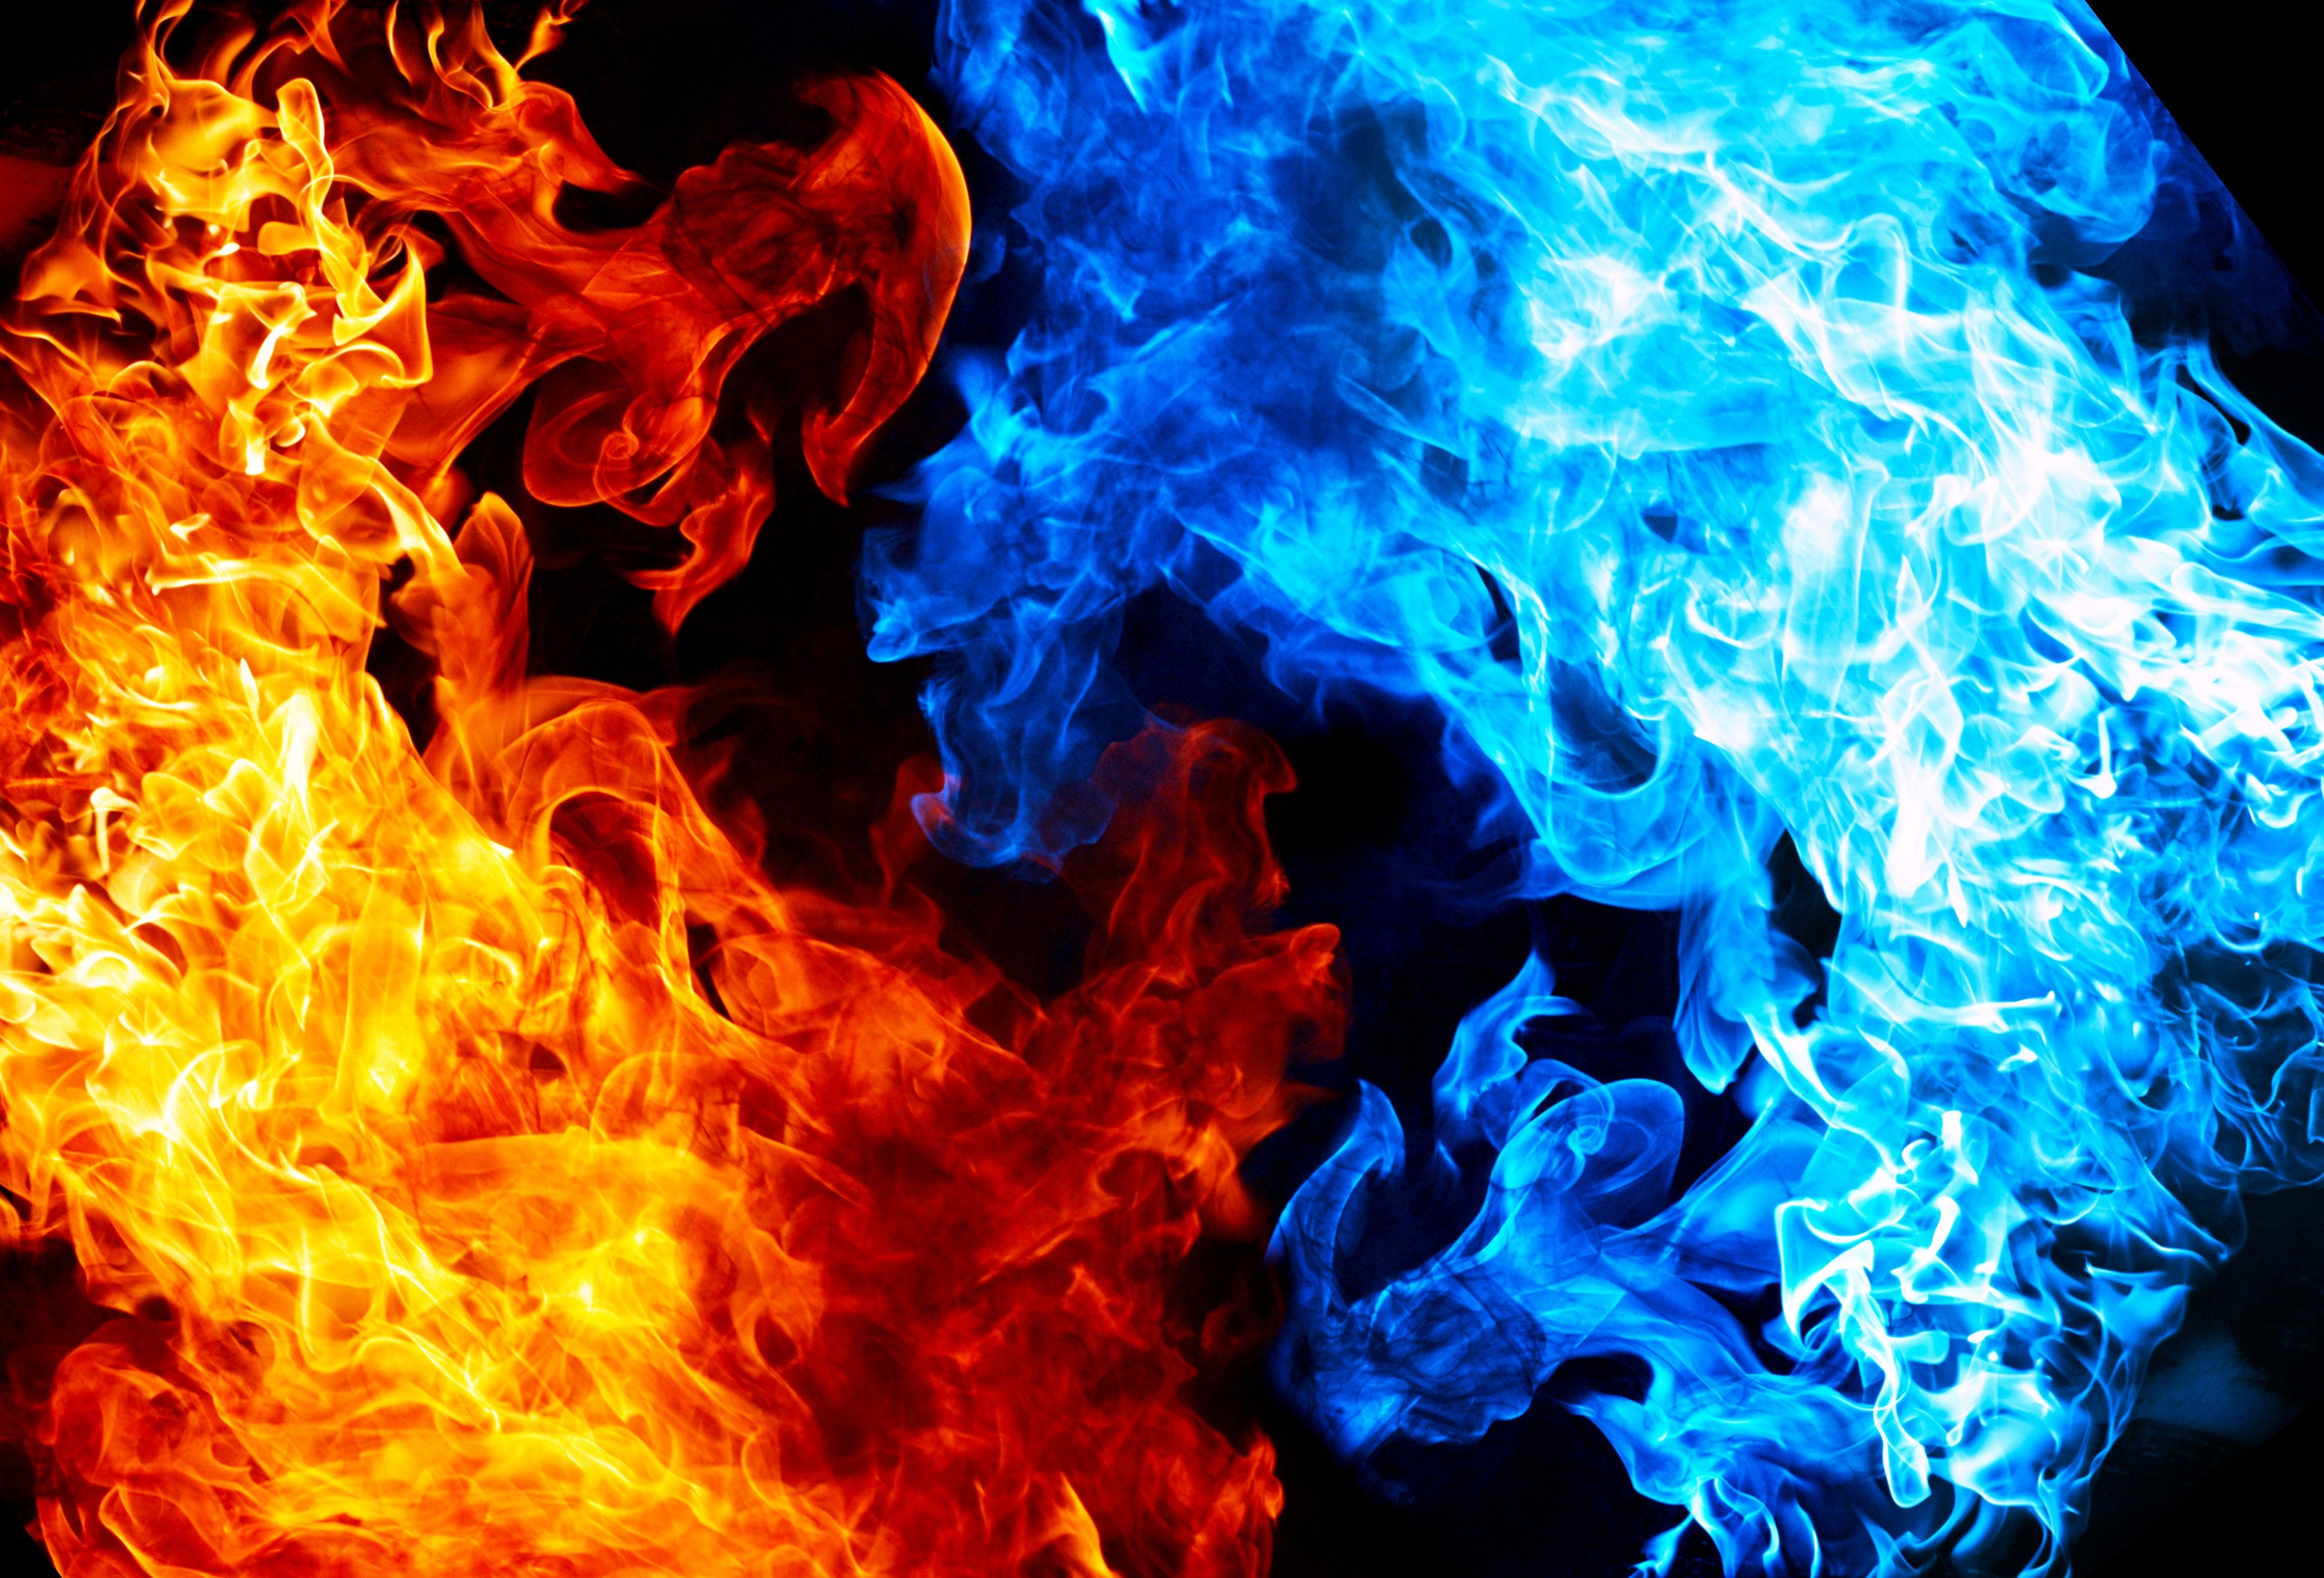 3871x2628 - Red and Blue Fire 14